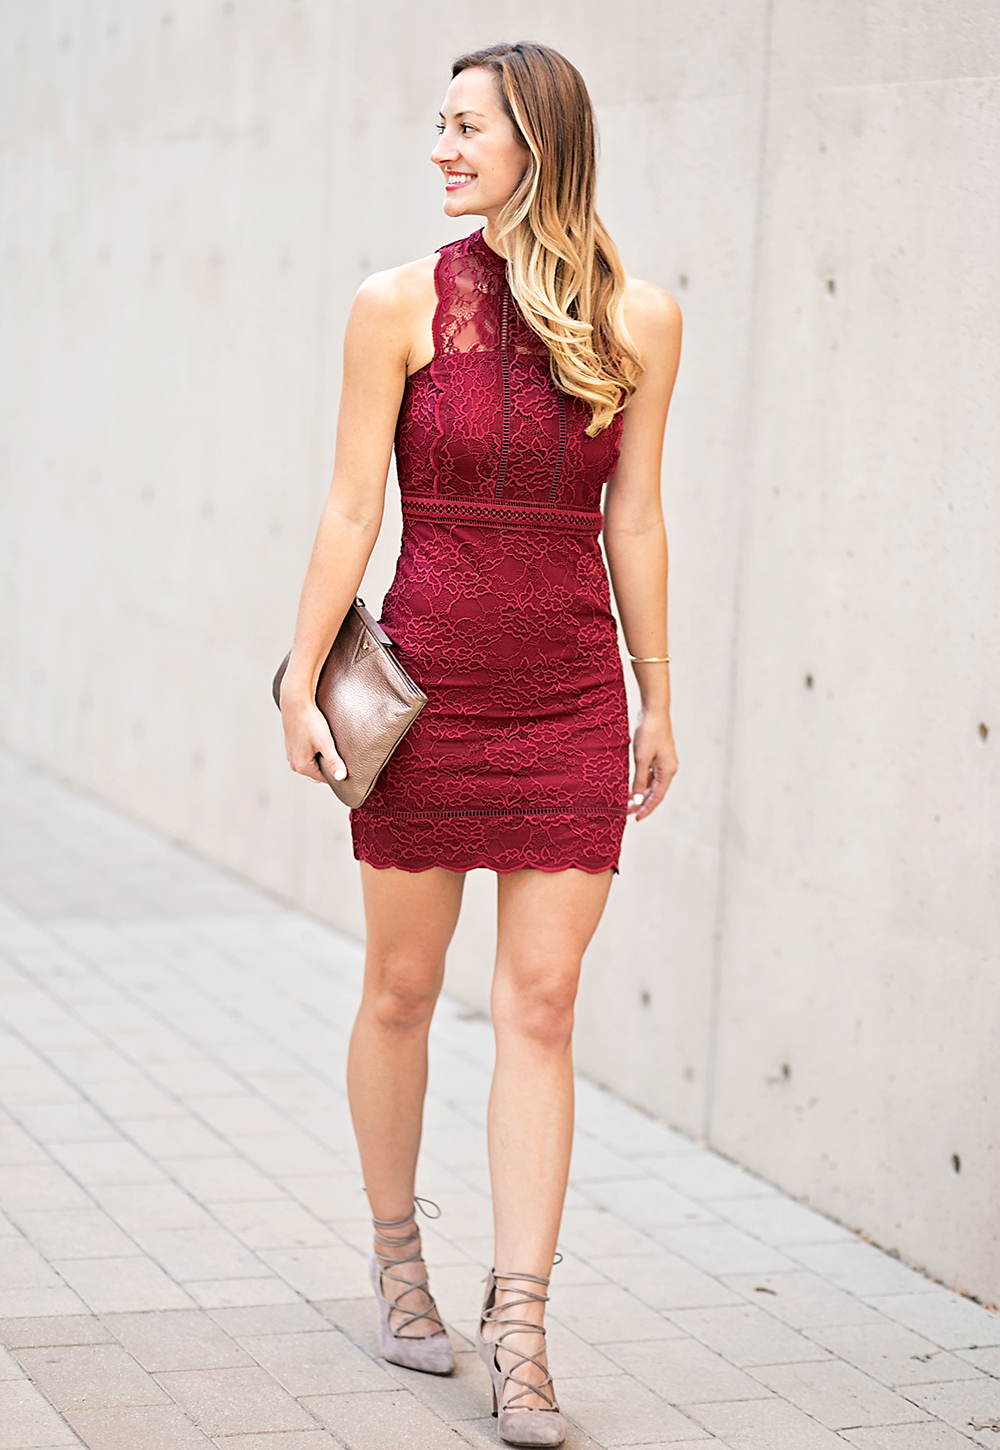 livvyland-blog-olivia-watson-holiday-red-lace-cocktail-dress-party-outfit-winter-holiday-office-nye-what-to-wear-4